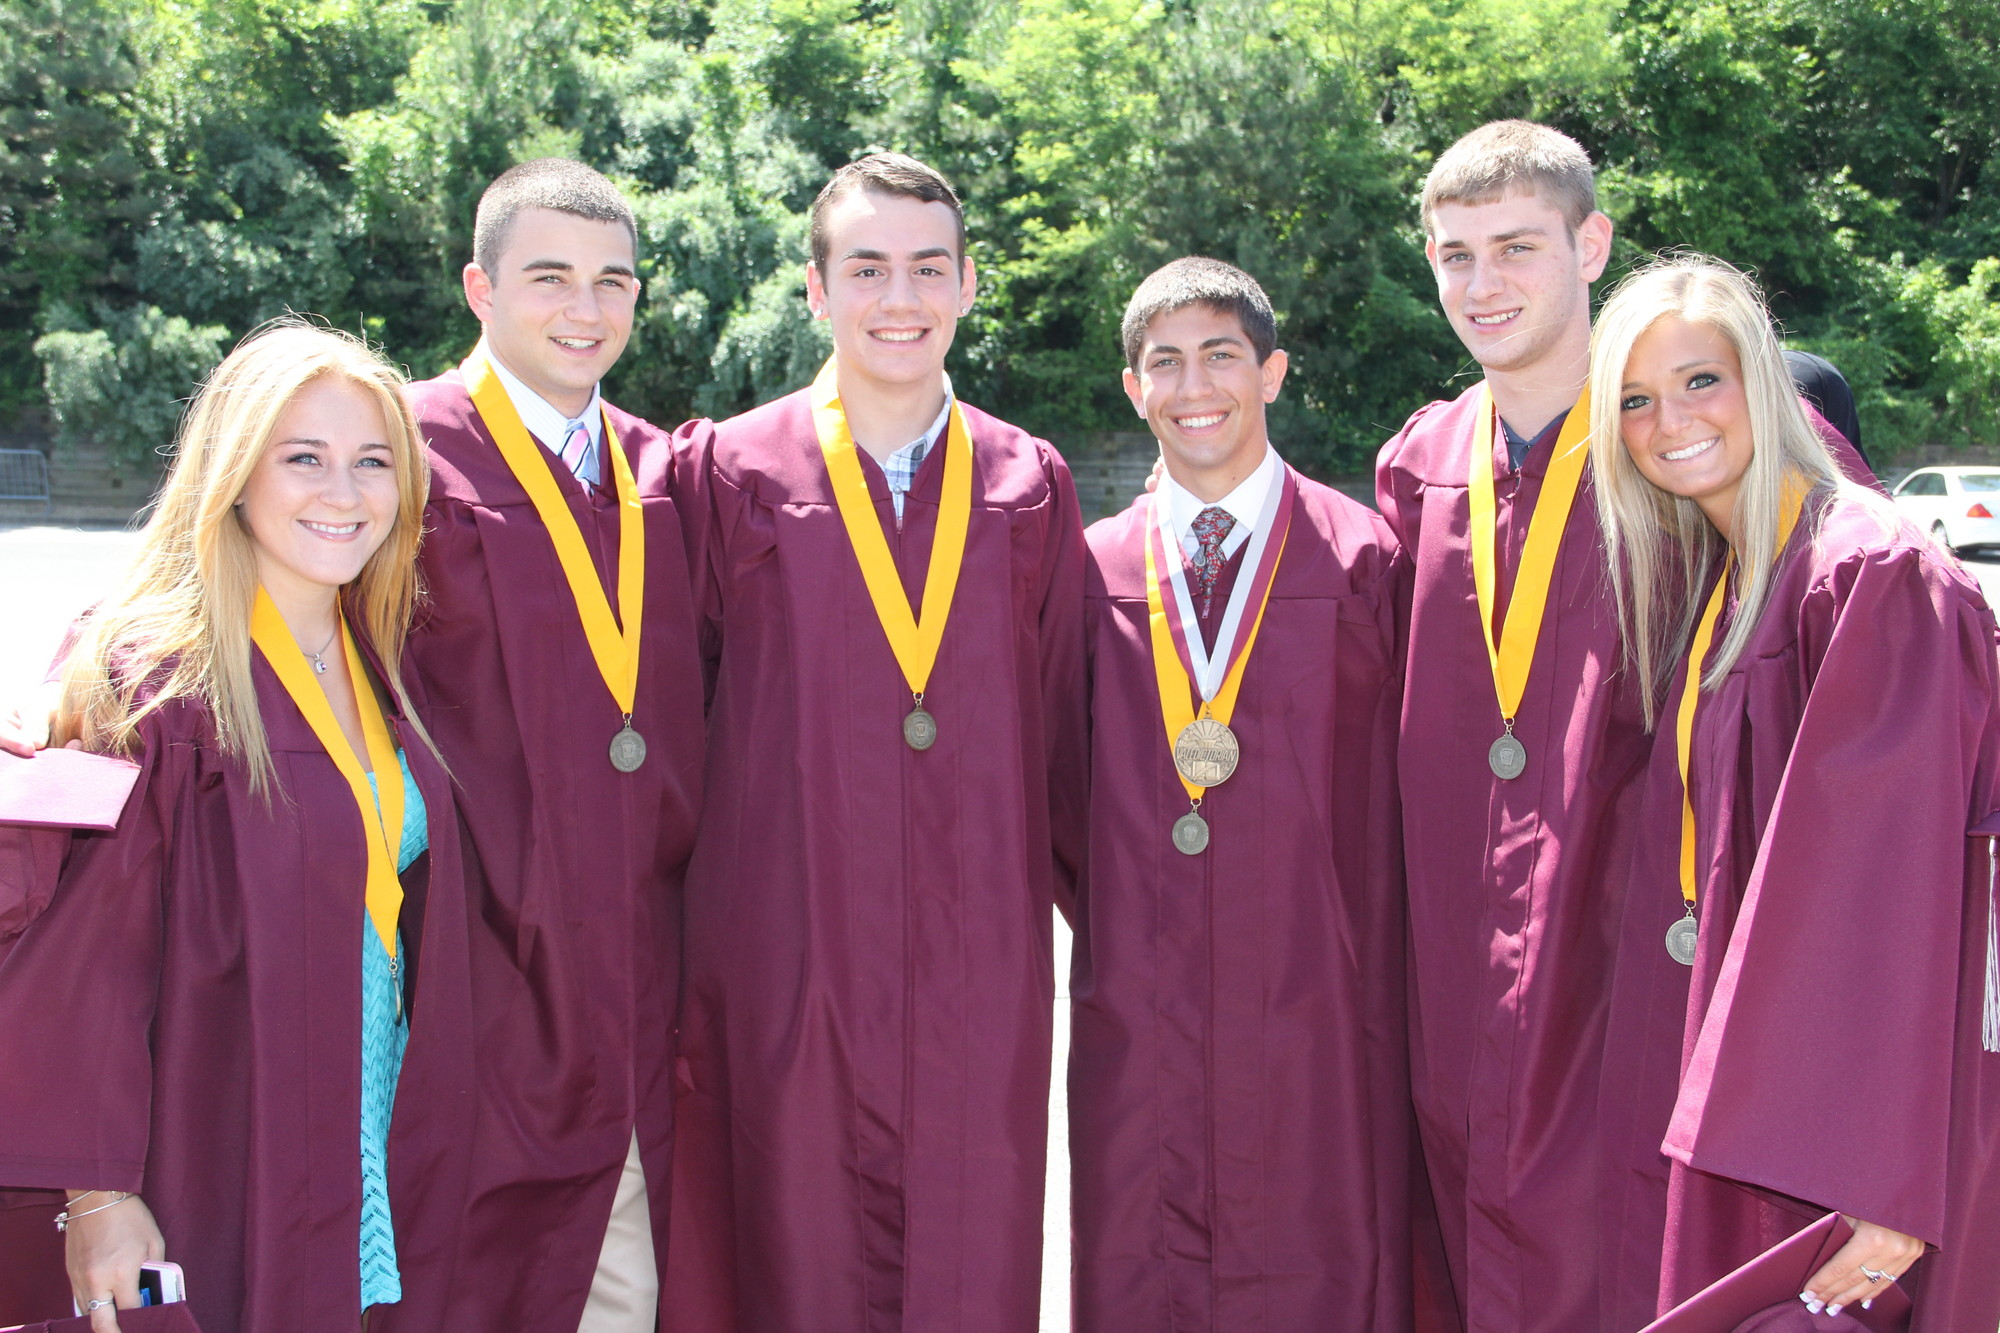 Sam Deluca, Eric Lugassy, Dennis Hassett, Mepham valedictorian Connor Garet, Brian McArdle and Samantha Maddalena wore medals designating their membership in National Honor Society.